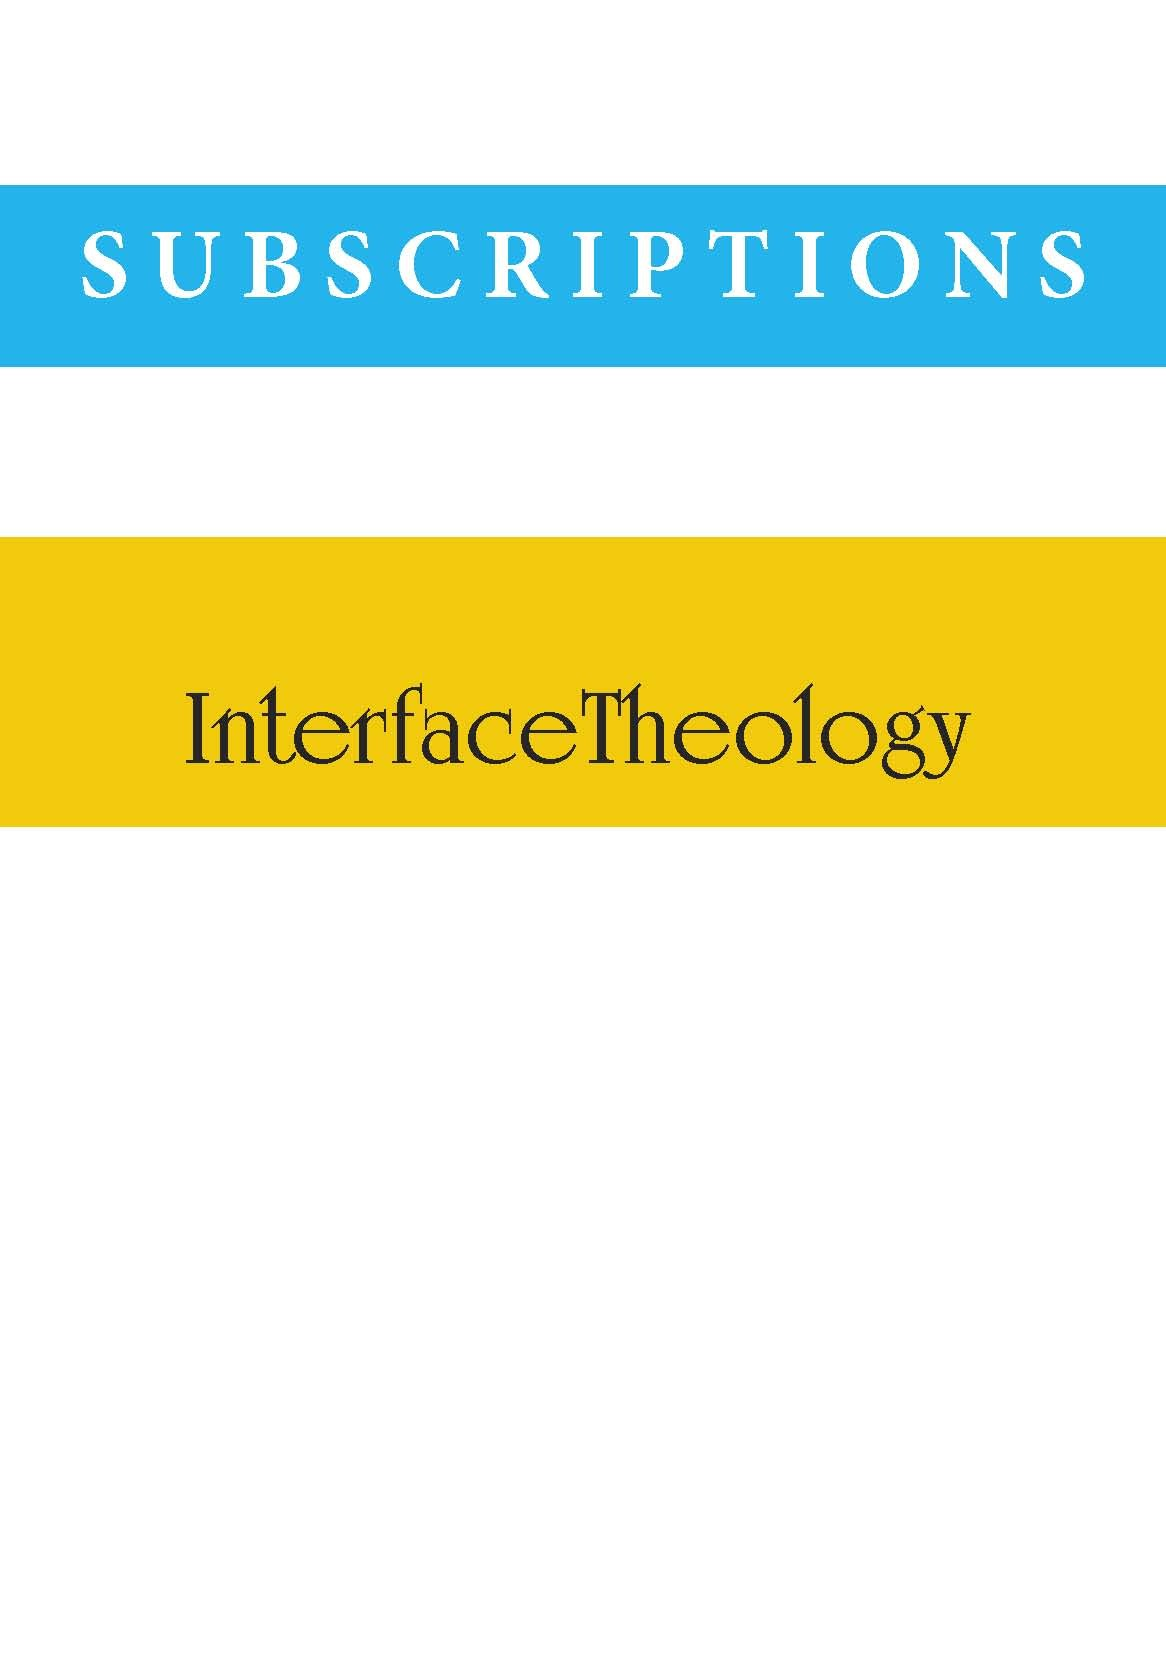 InterfaceTheology Subscriptions (INSTITUTIONS, OVERSEAS)